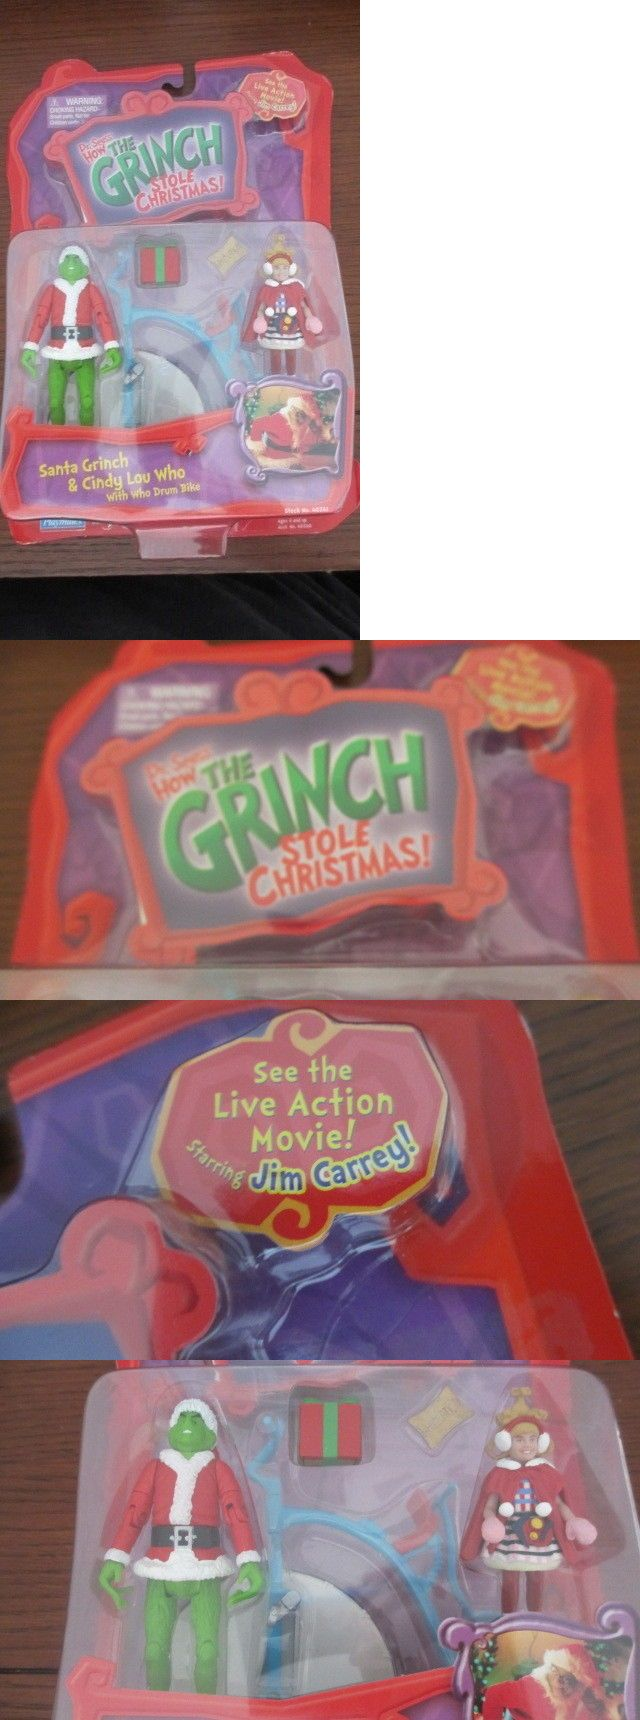 Dr Seuss 20906: Dr. Seuss How The Grinch Stole Christmas Playset- Santa Grinch And Cindy Lou Who -> BUY IT NOW ONLY: $38.99 on eBay!